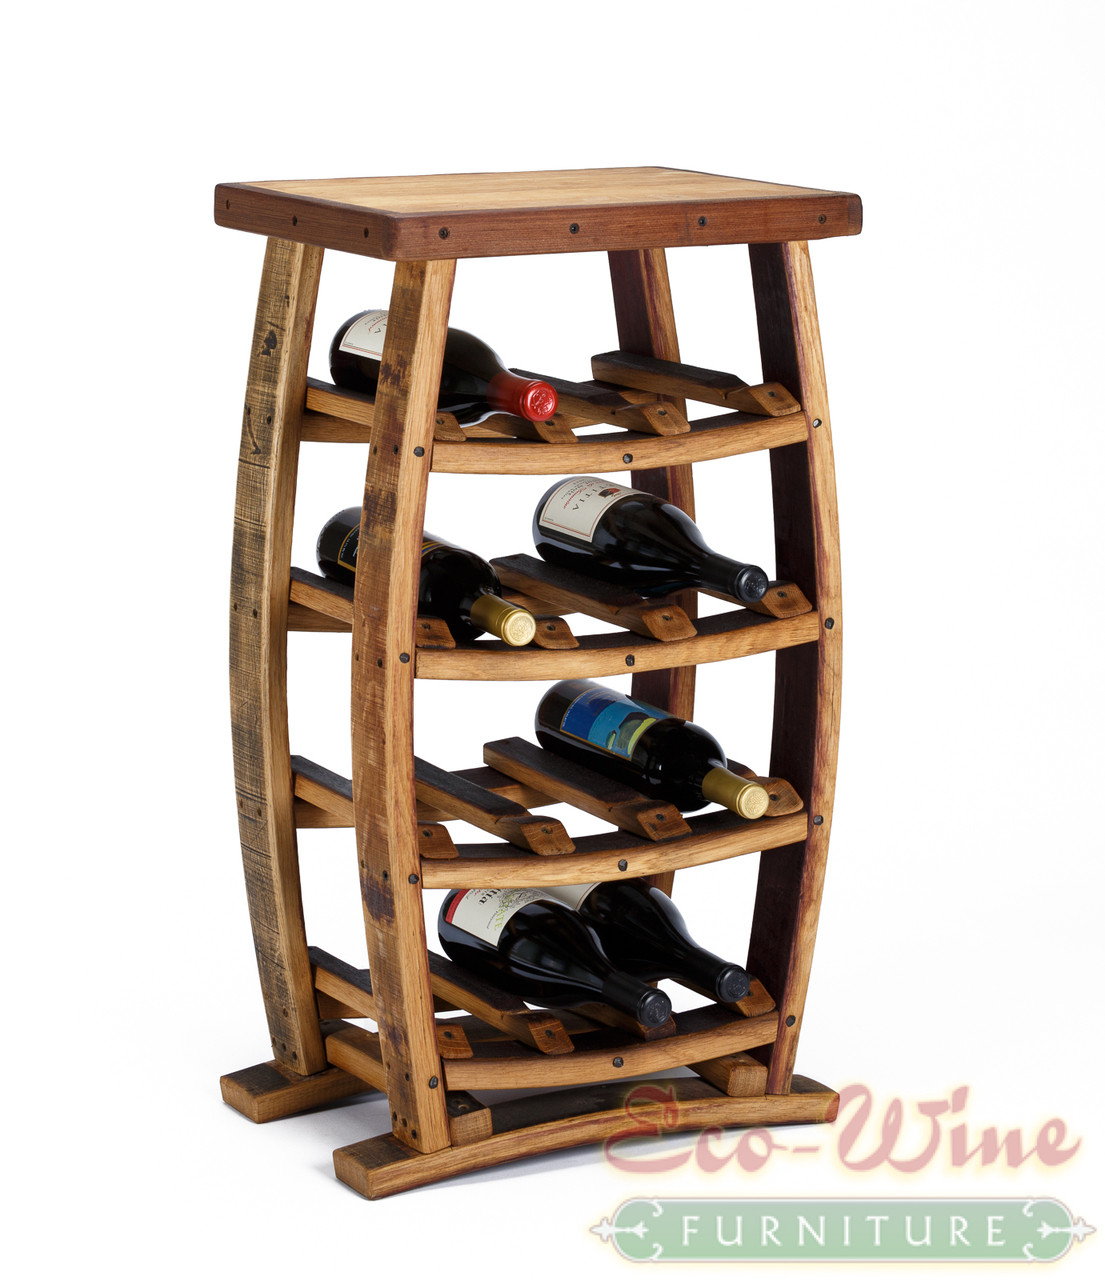 This Stand Up Wine Rack Features Storage For 12 Wine Bottles On Four Shelves .